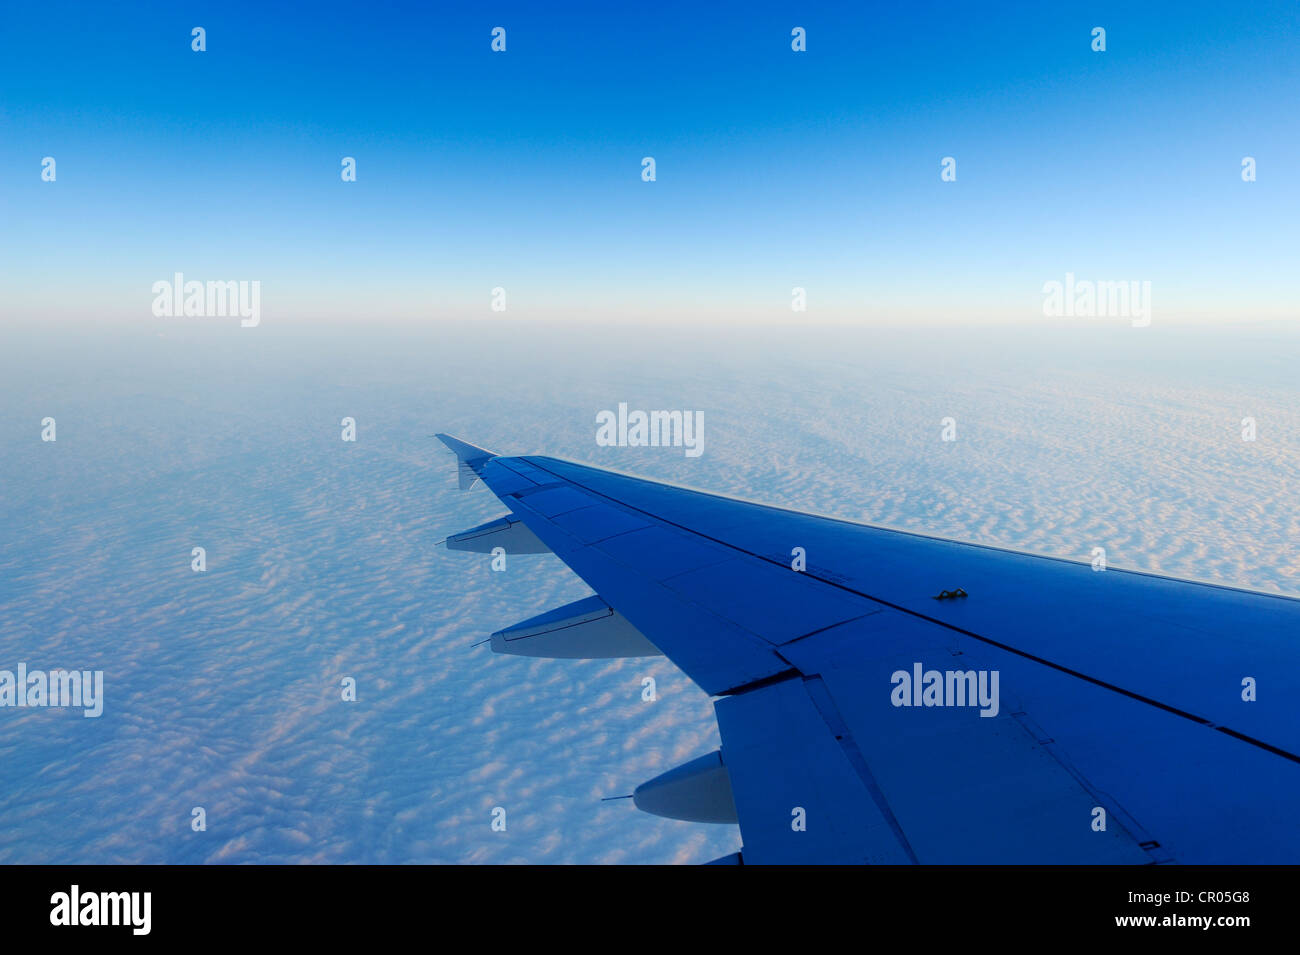 Airplane wings over a sea of fog, Basel, Switzerland, Europe - Stock Image